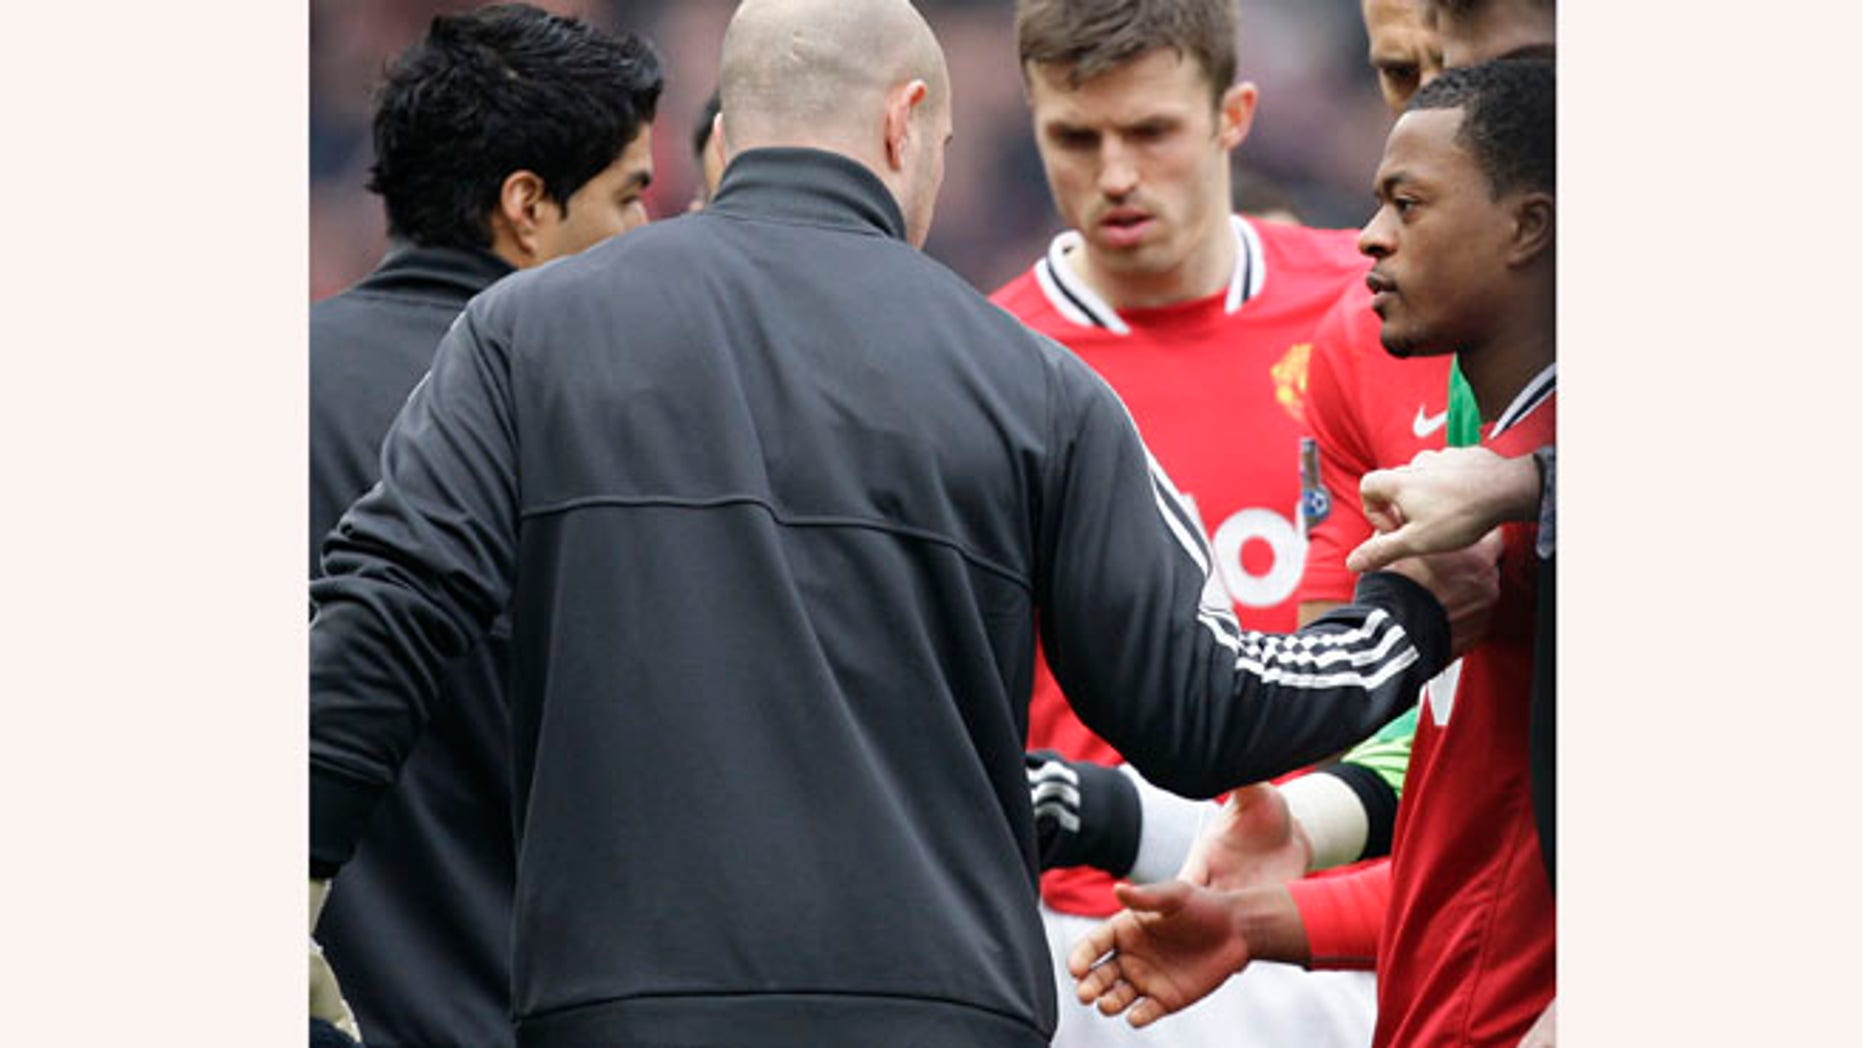 Manchester United's Patrice Evra, right, attempts to shake hands with Liverpool's Luis Suarez, left, during their English Premier League soccer match at Old Trafford Stadium, Manchester, England, Saturday, Feb. 11, 2012.  Suarez refused to shake the hand of the Manchester United defender Evra, their first meeting since the Liverpool forward was banned for eight matches for racially abusing Evra in October 2011.(AP Photo/Jon Super)